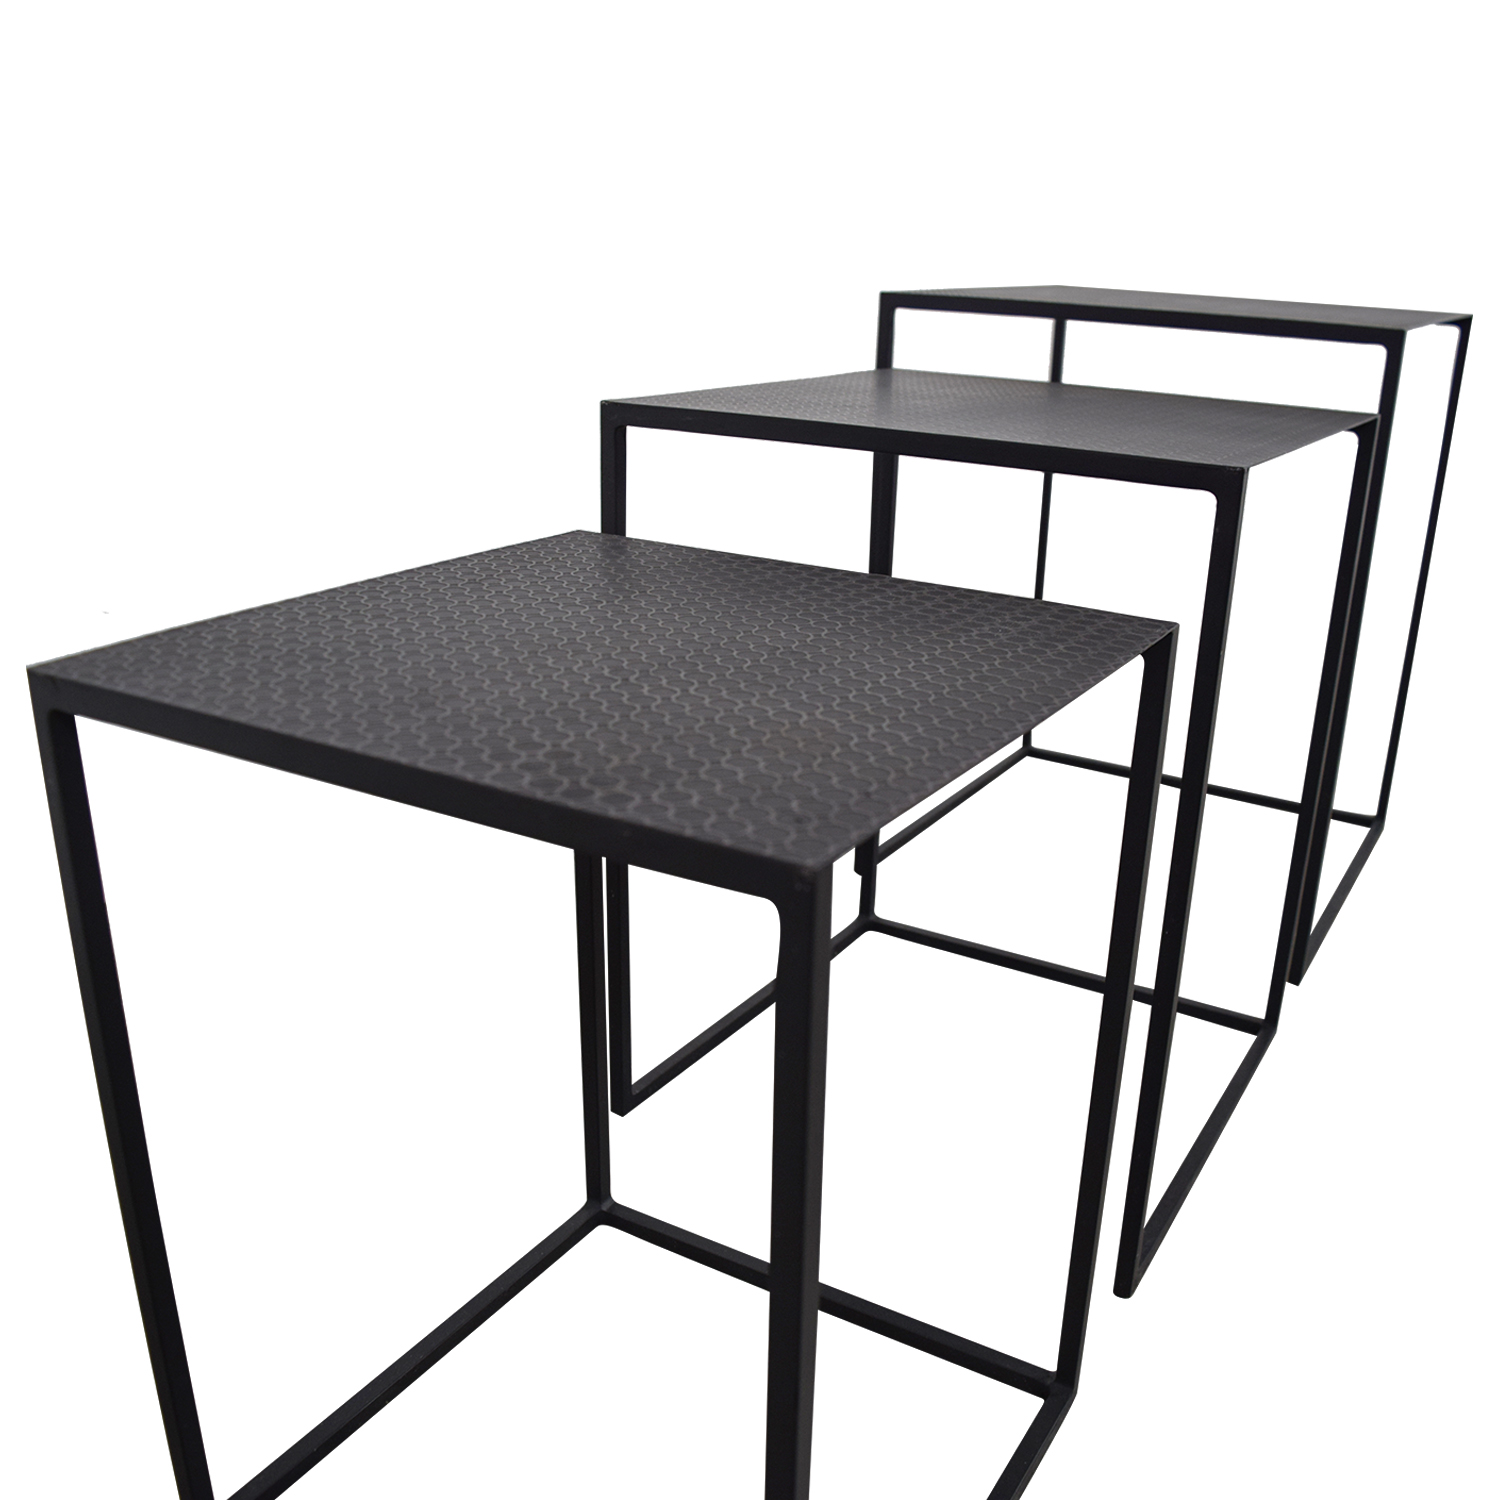 Stackable Nesting Tables ~ Stackable nesting tables choice image bar height dining